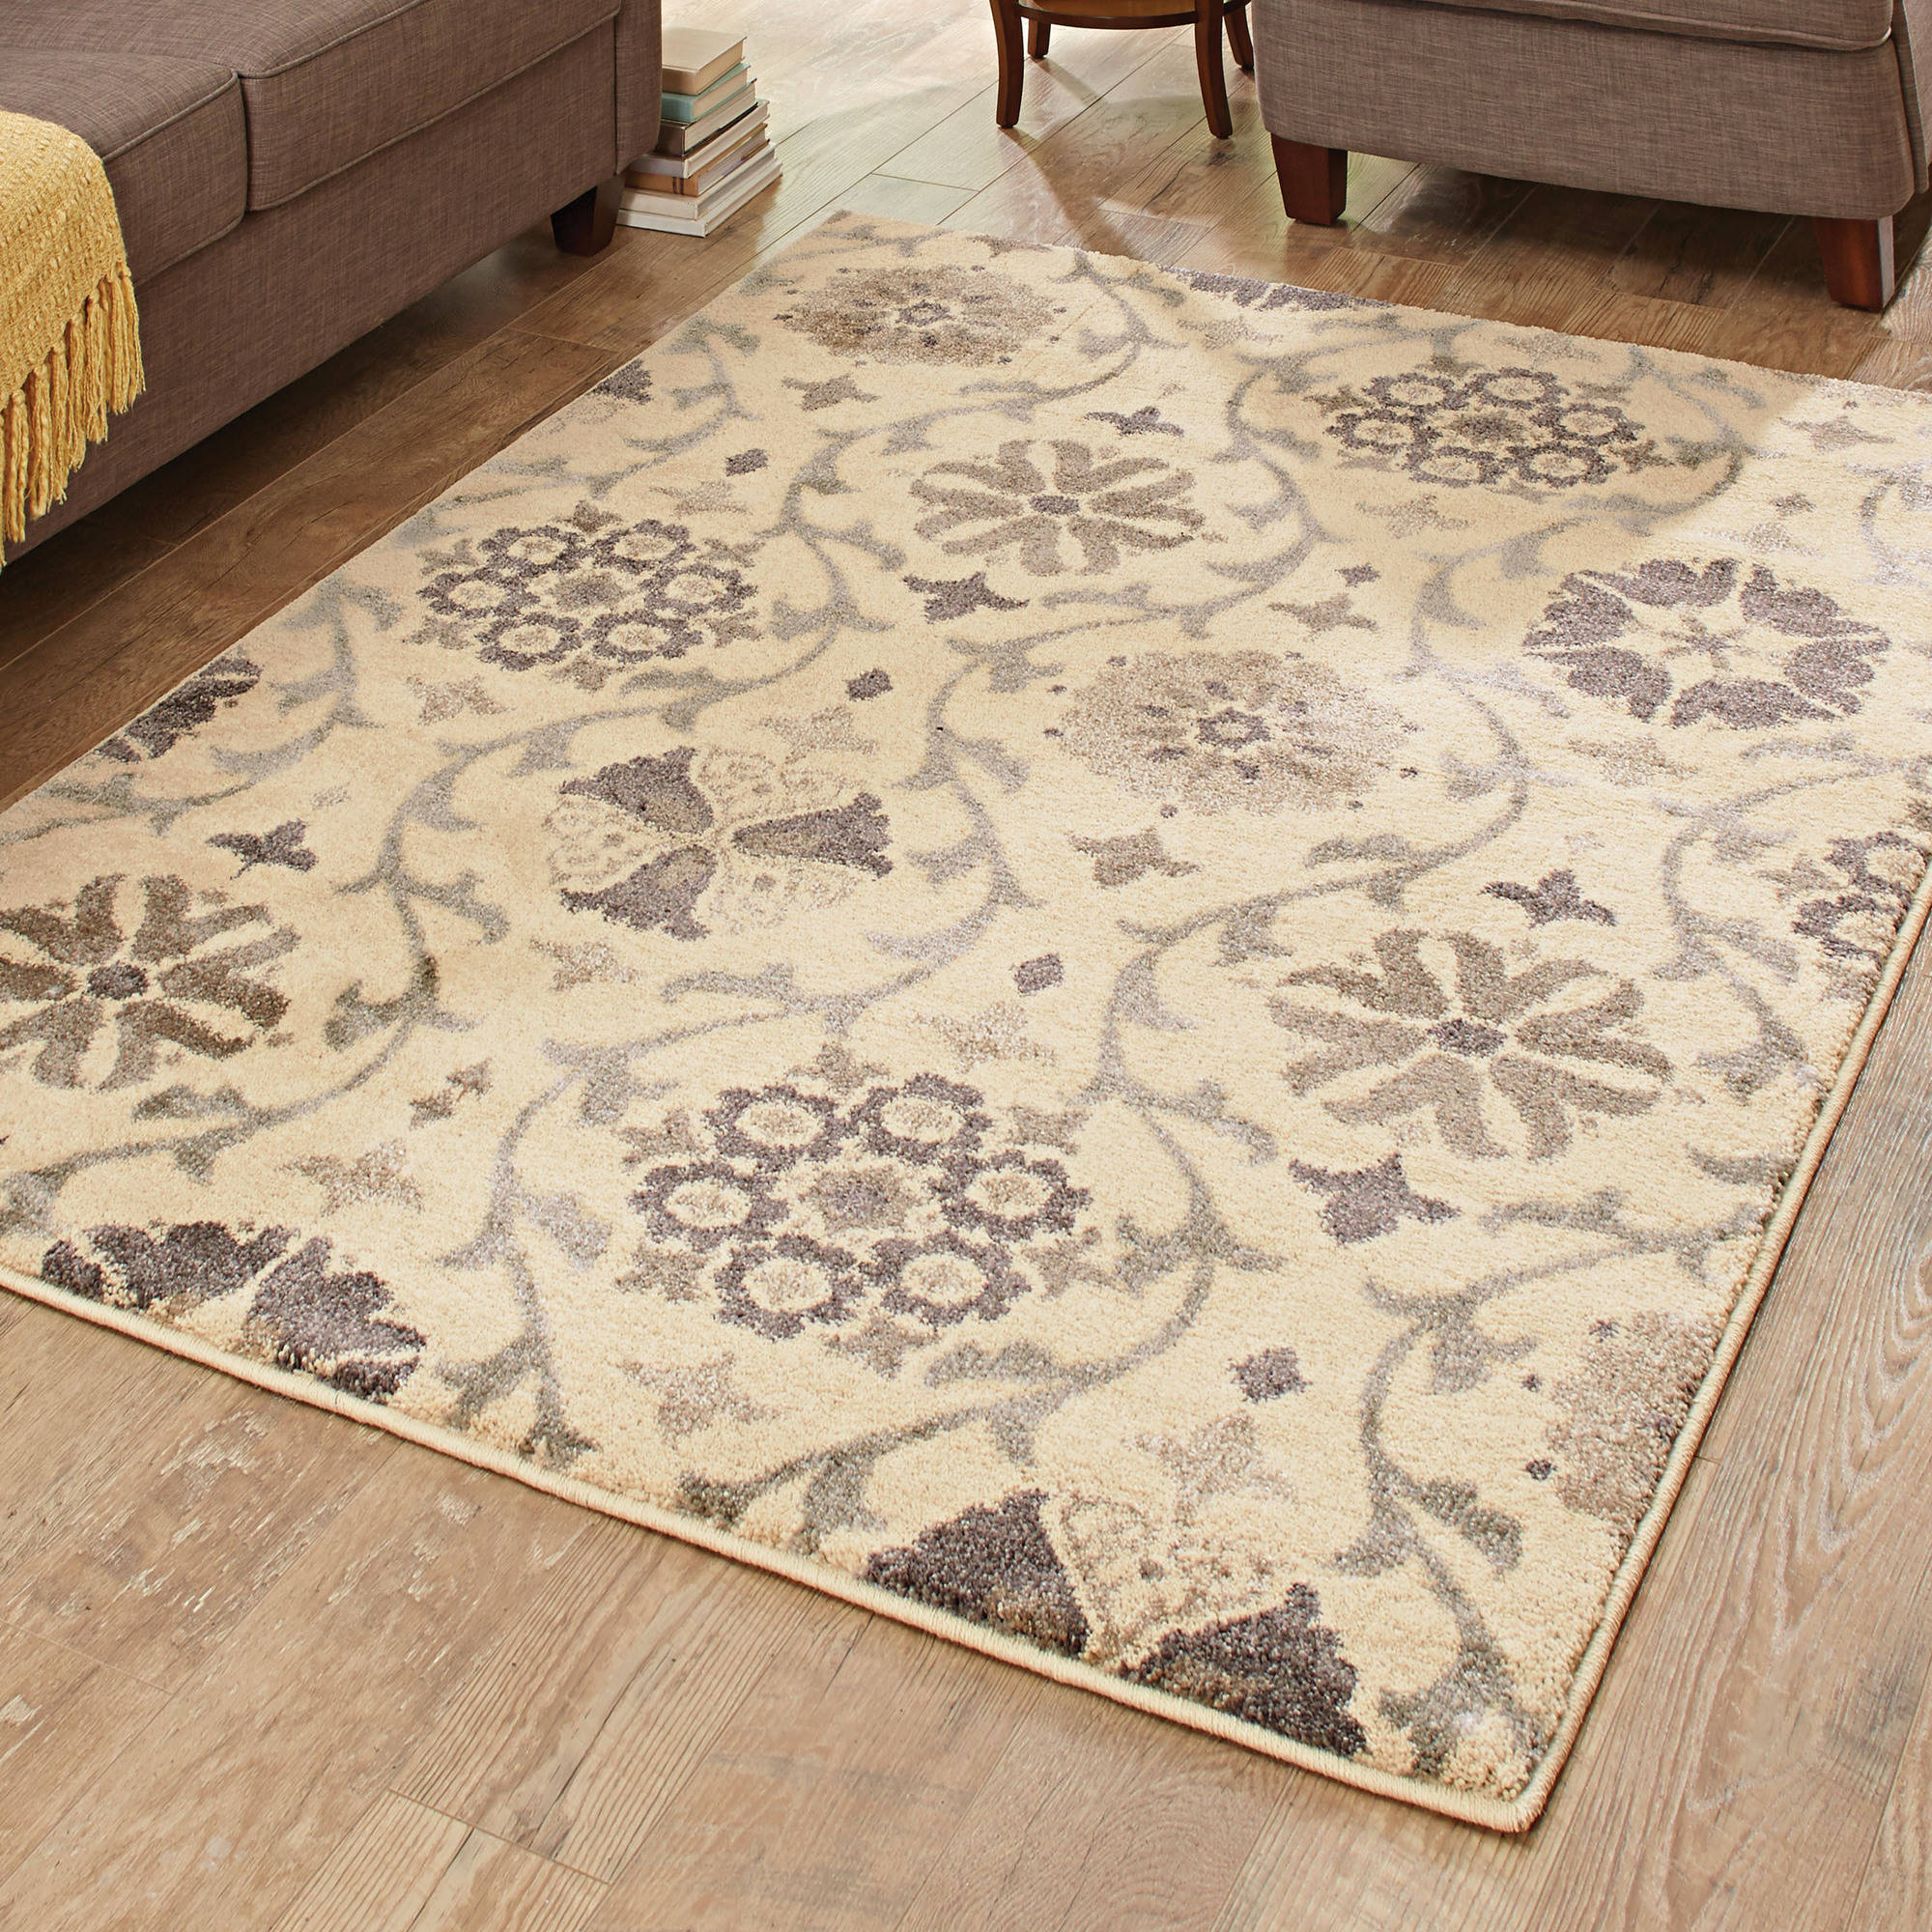 Better Homes And Gardens Cream Floral Vine Area Rug Walmart Com